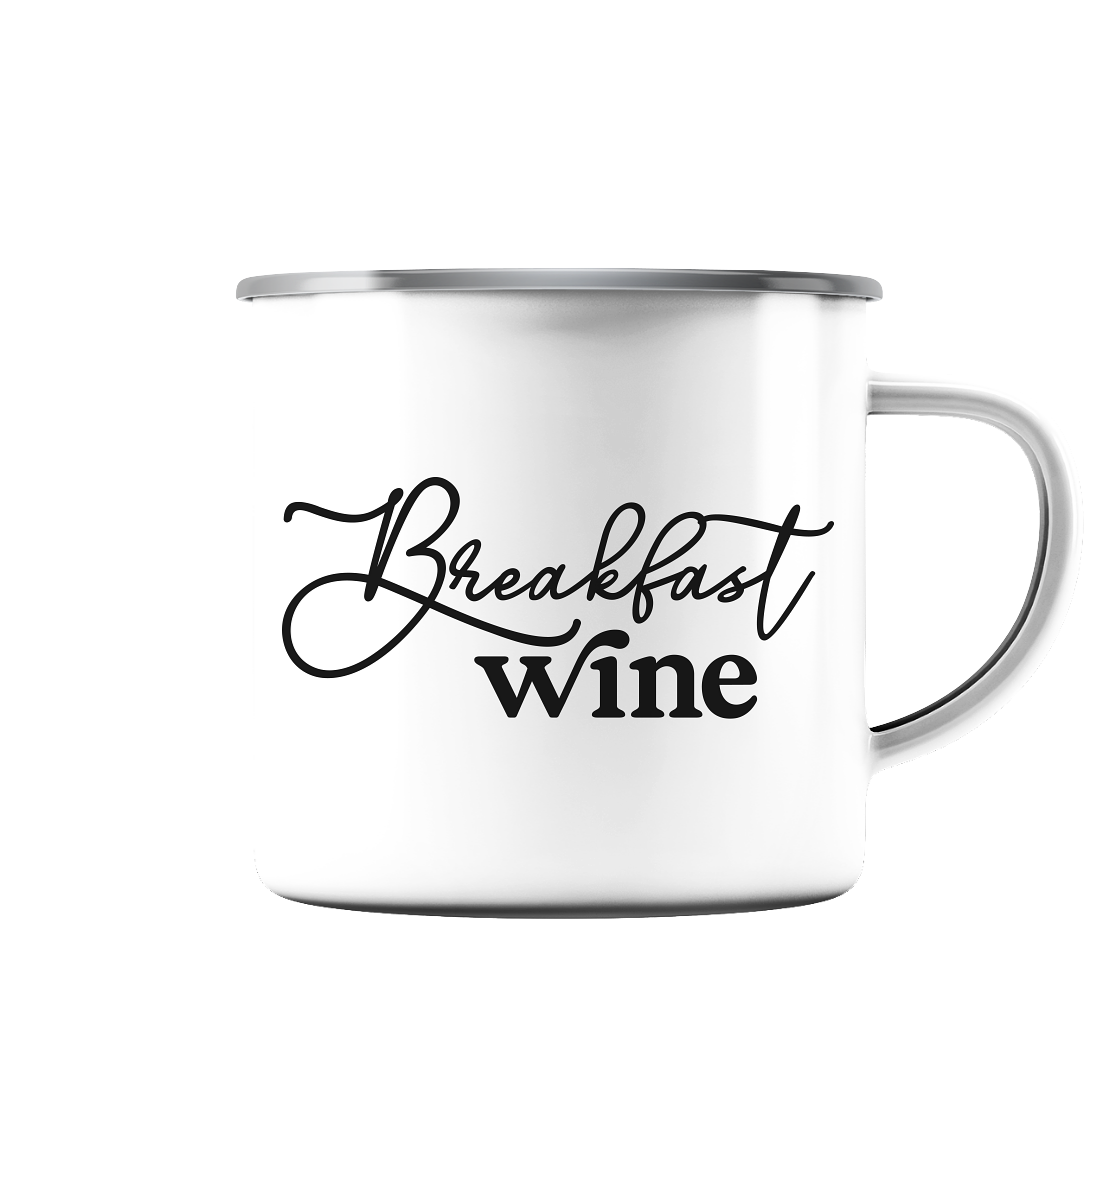 BREAKFAST WINE - Emaille Tasse